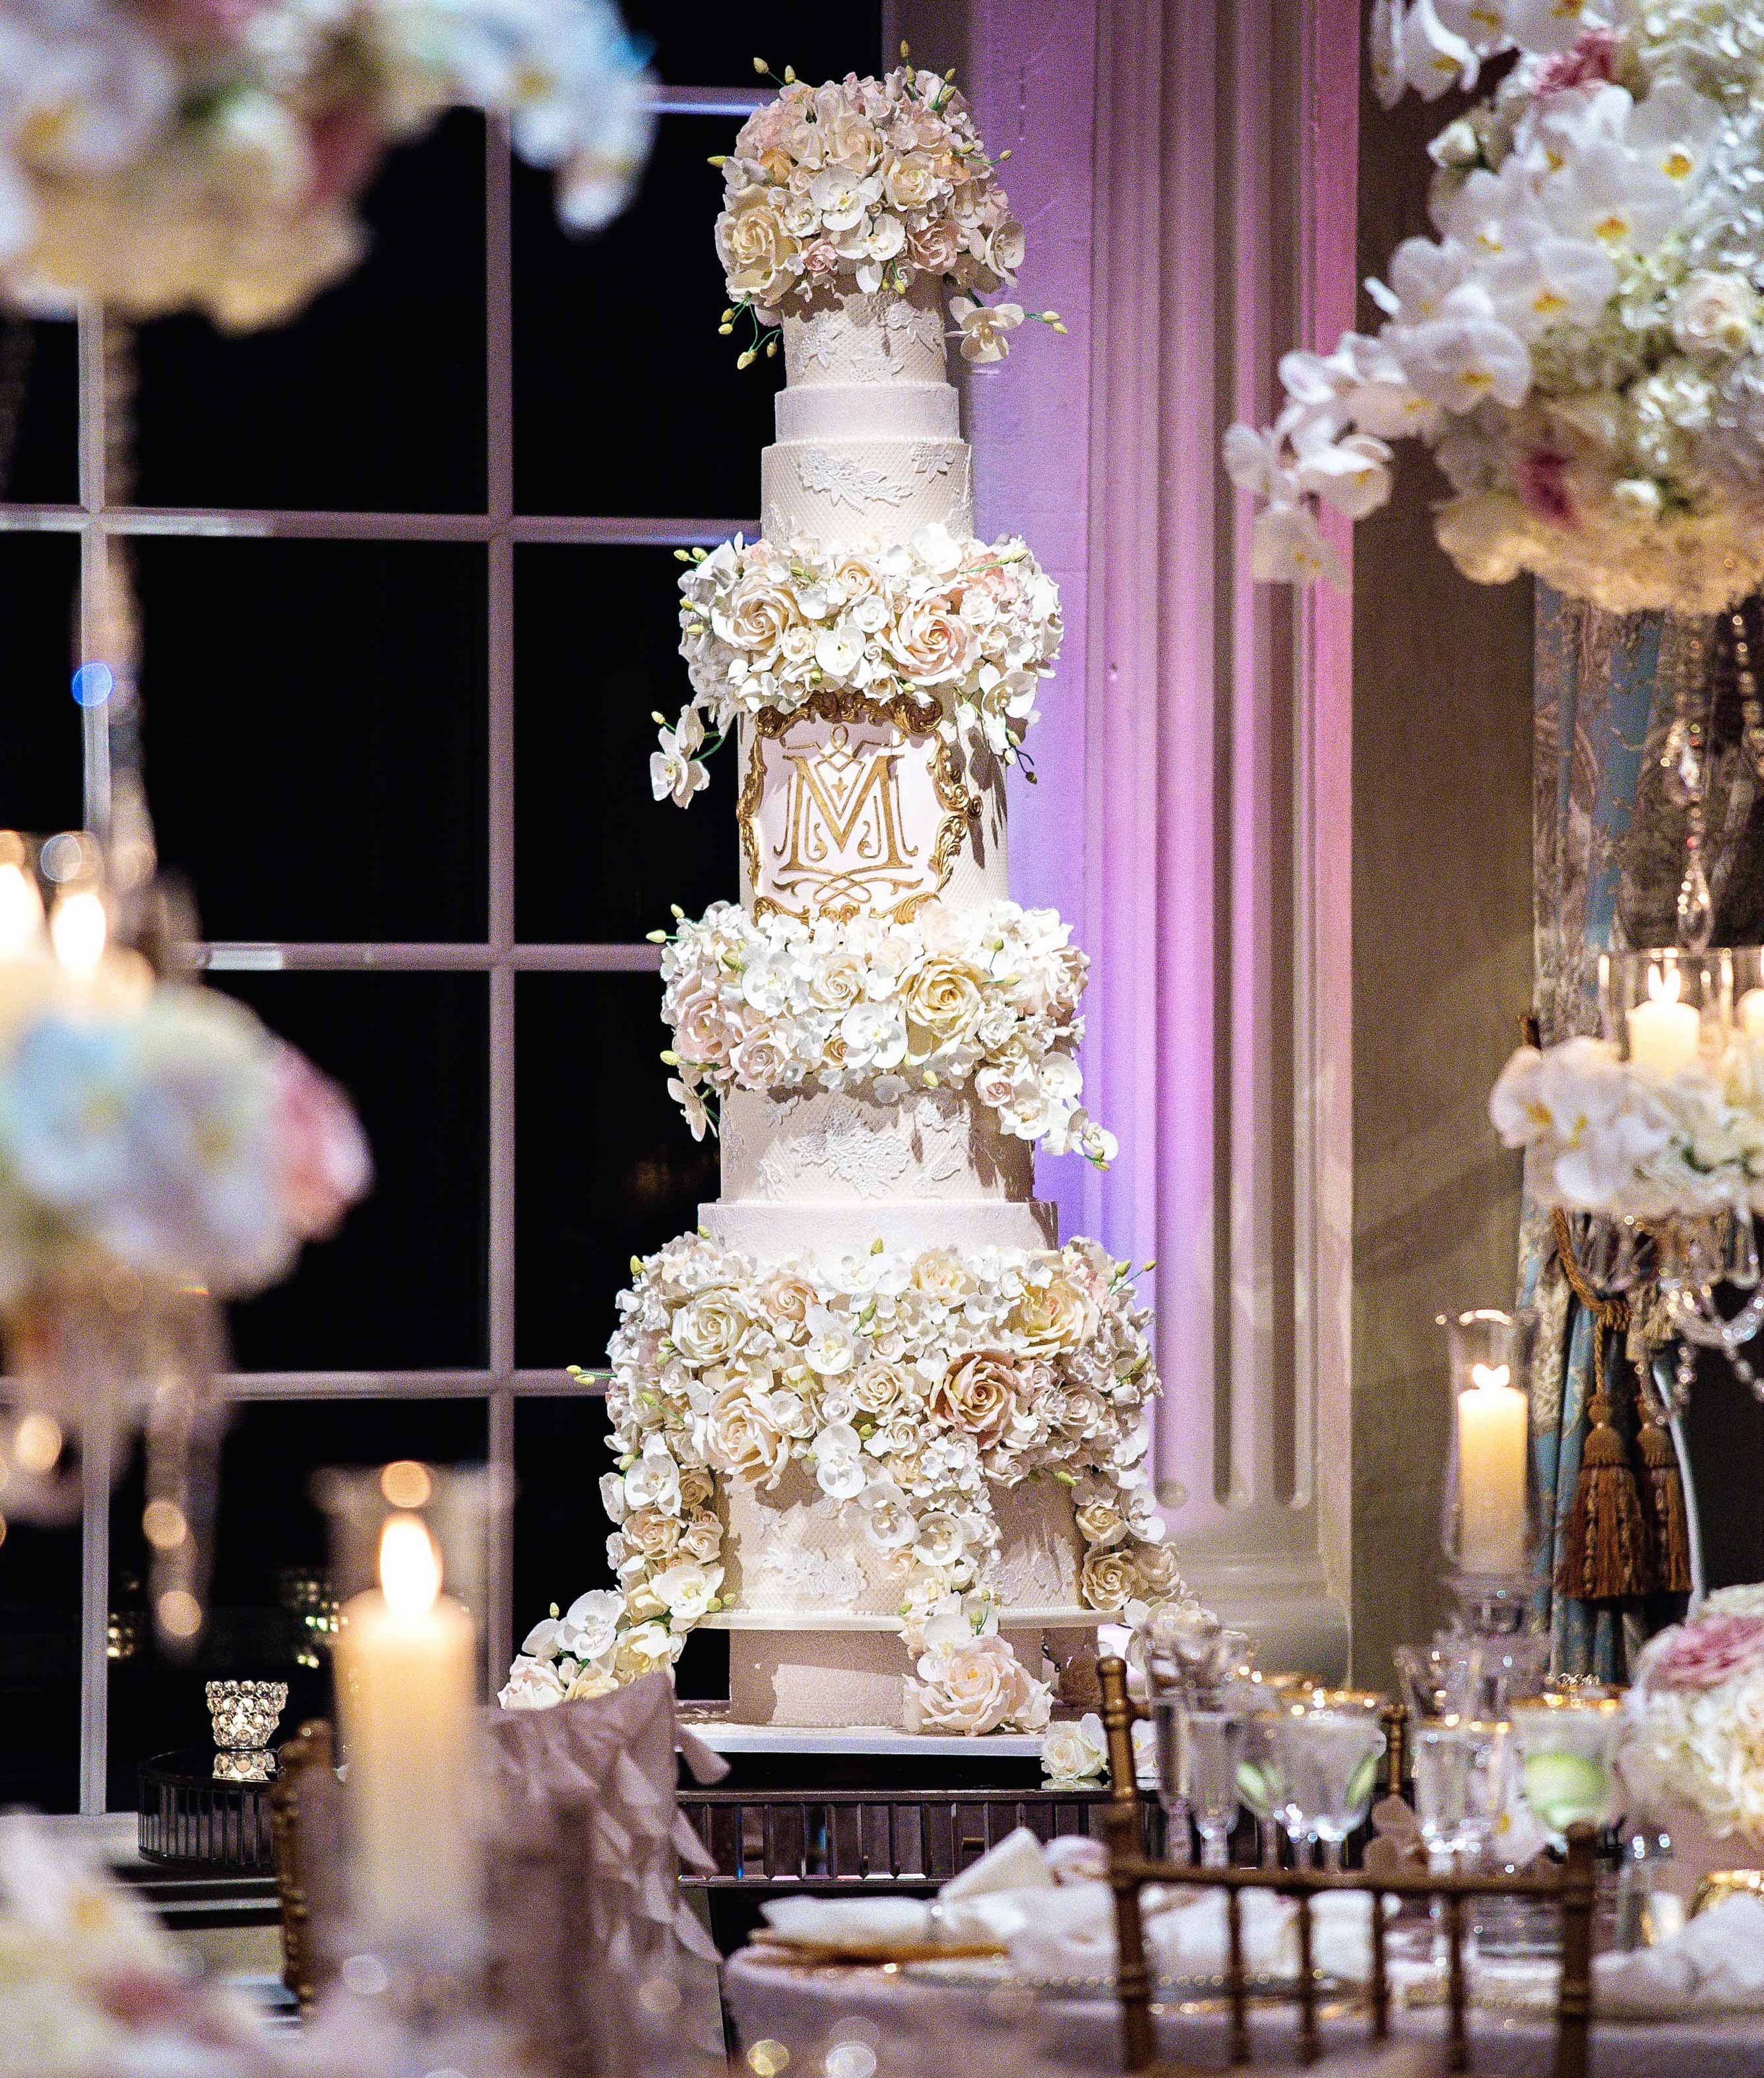 Tracy Morgan Megan Wollover wedding cake tall with monogram and sugar flowers